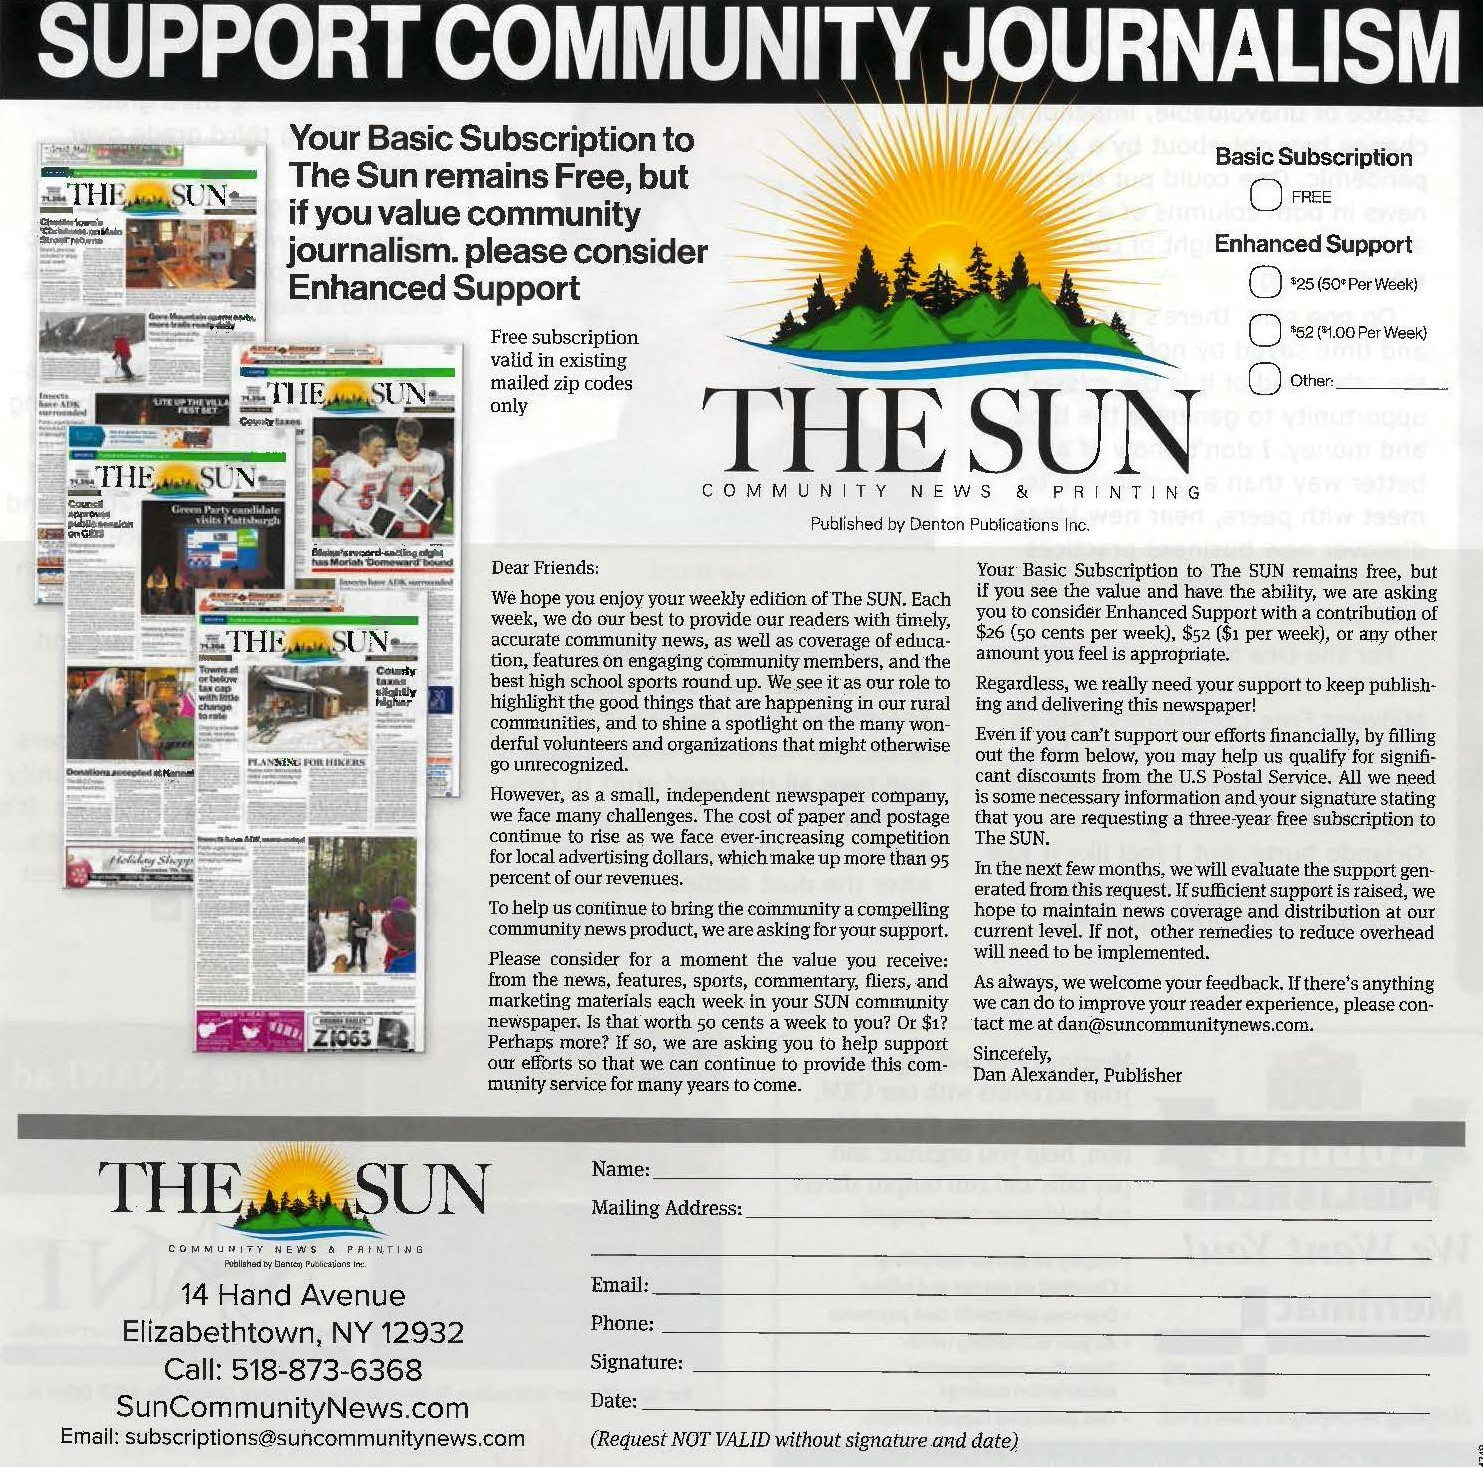 Idea #26 of 50 Days of Ideas! SUPPORT COMMUNITY JOURNALISM!